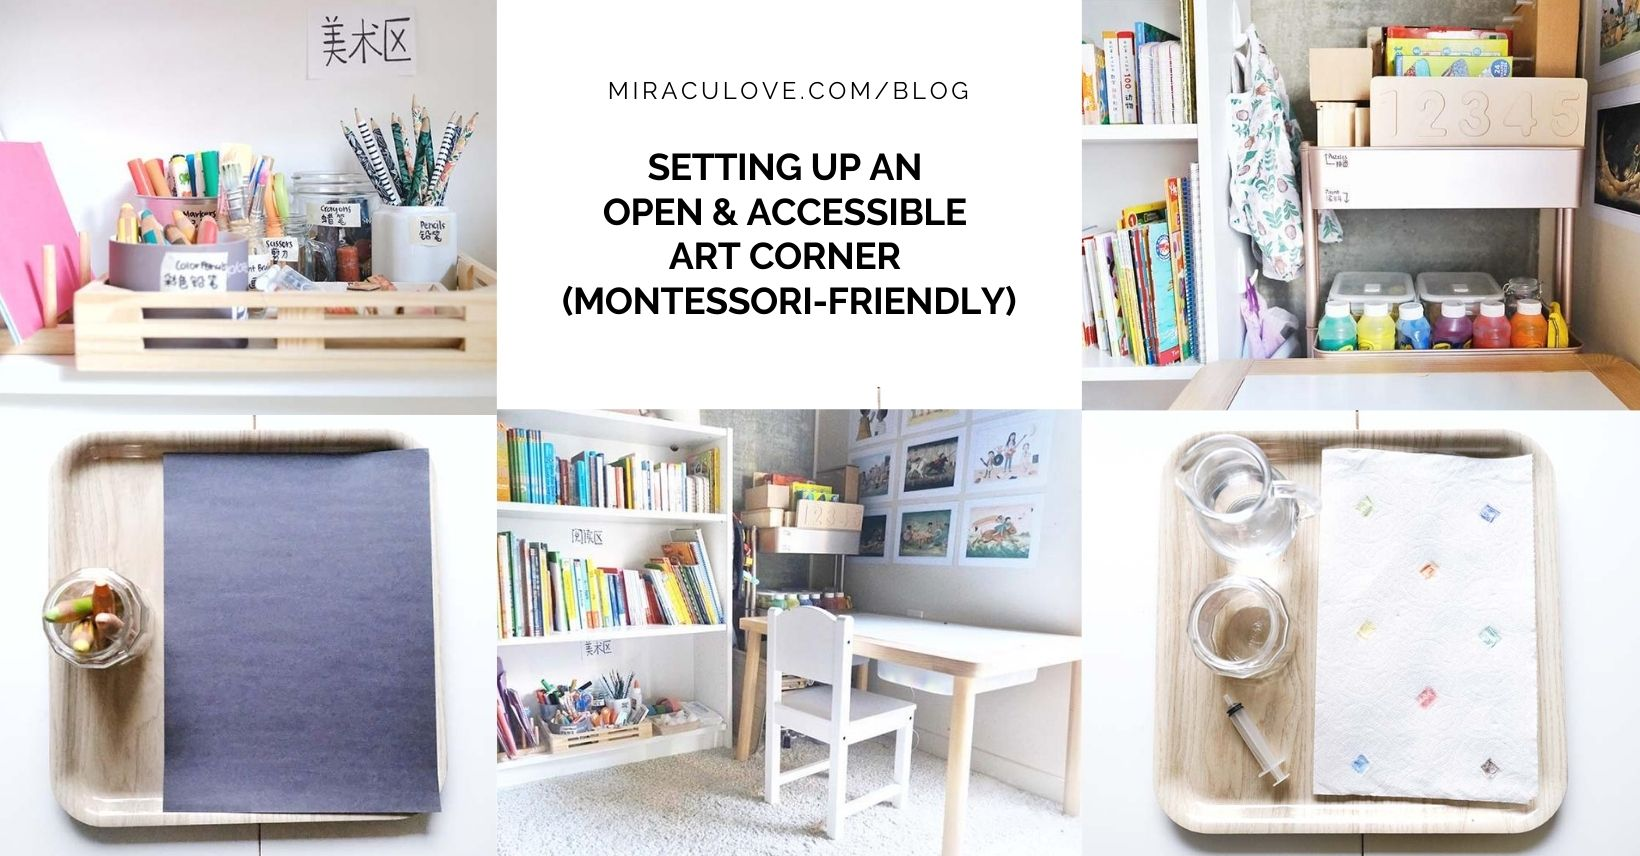 Setting up an Open & Accessible Art Corner at Home (Montessori-friendly)